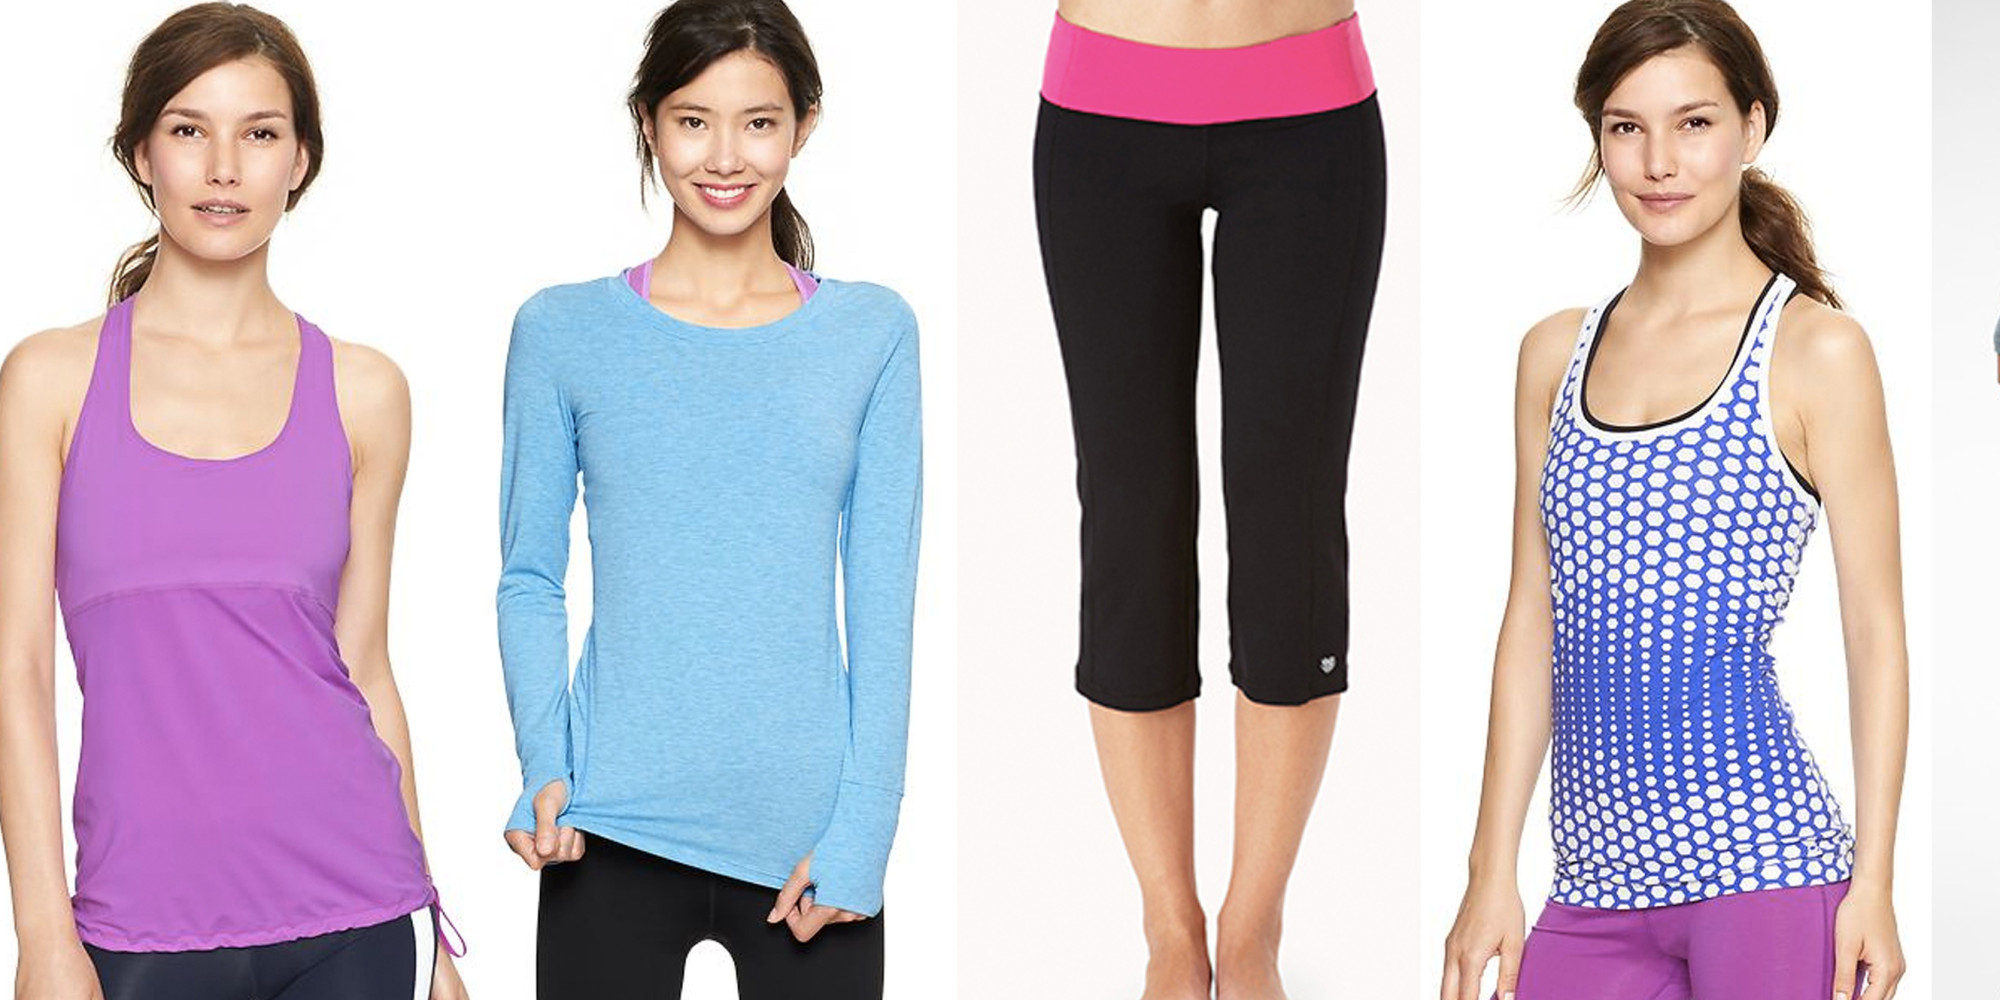 11 Places To Buy Yoga Gear That Aren't Lululemon | The Huffington Post